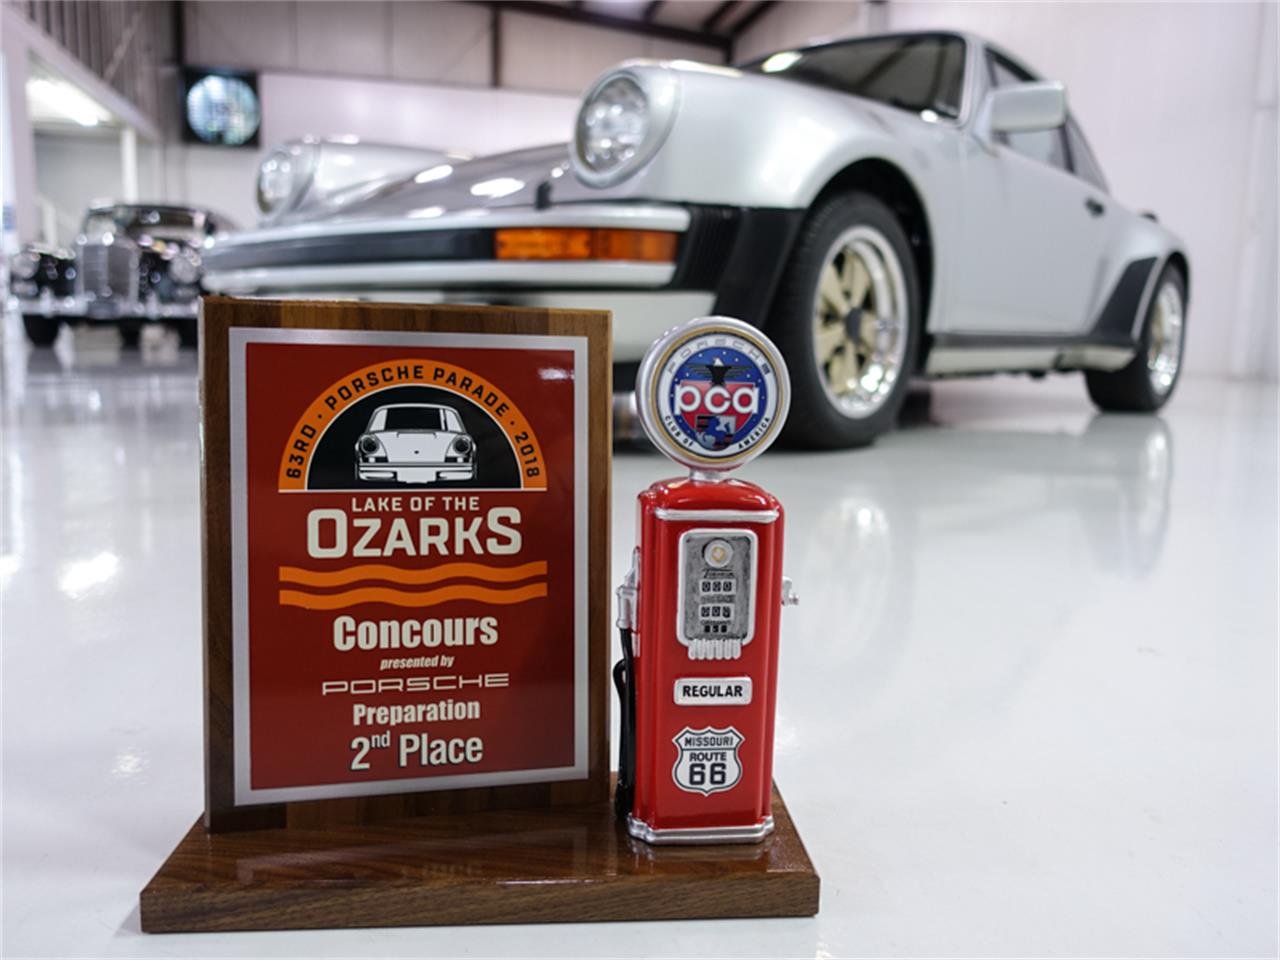 Large Picture of 1976 Porsche 930 Turbo - $229,900.00 Offered by Daniel Schmitt & Co. - FXKC